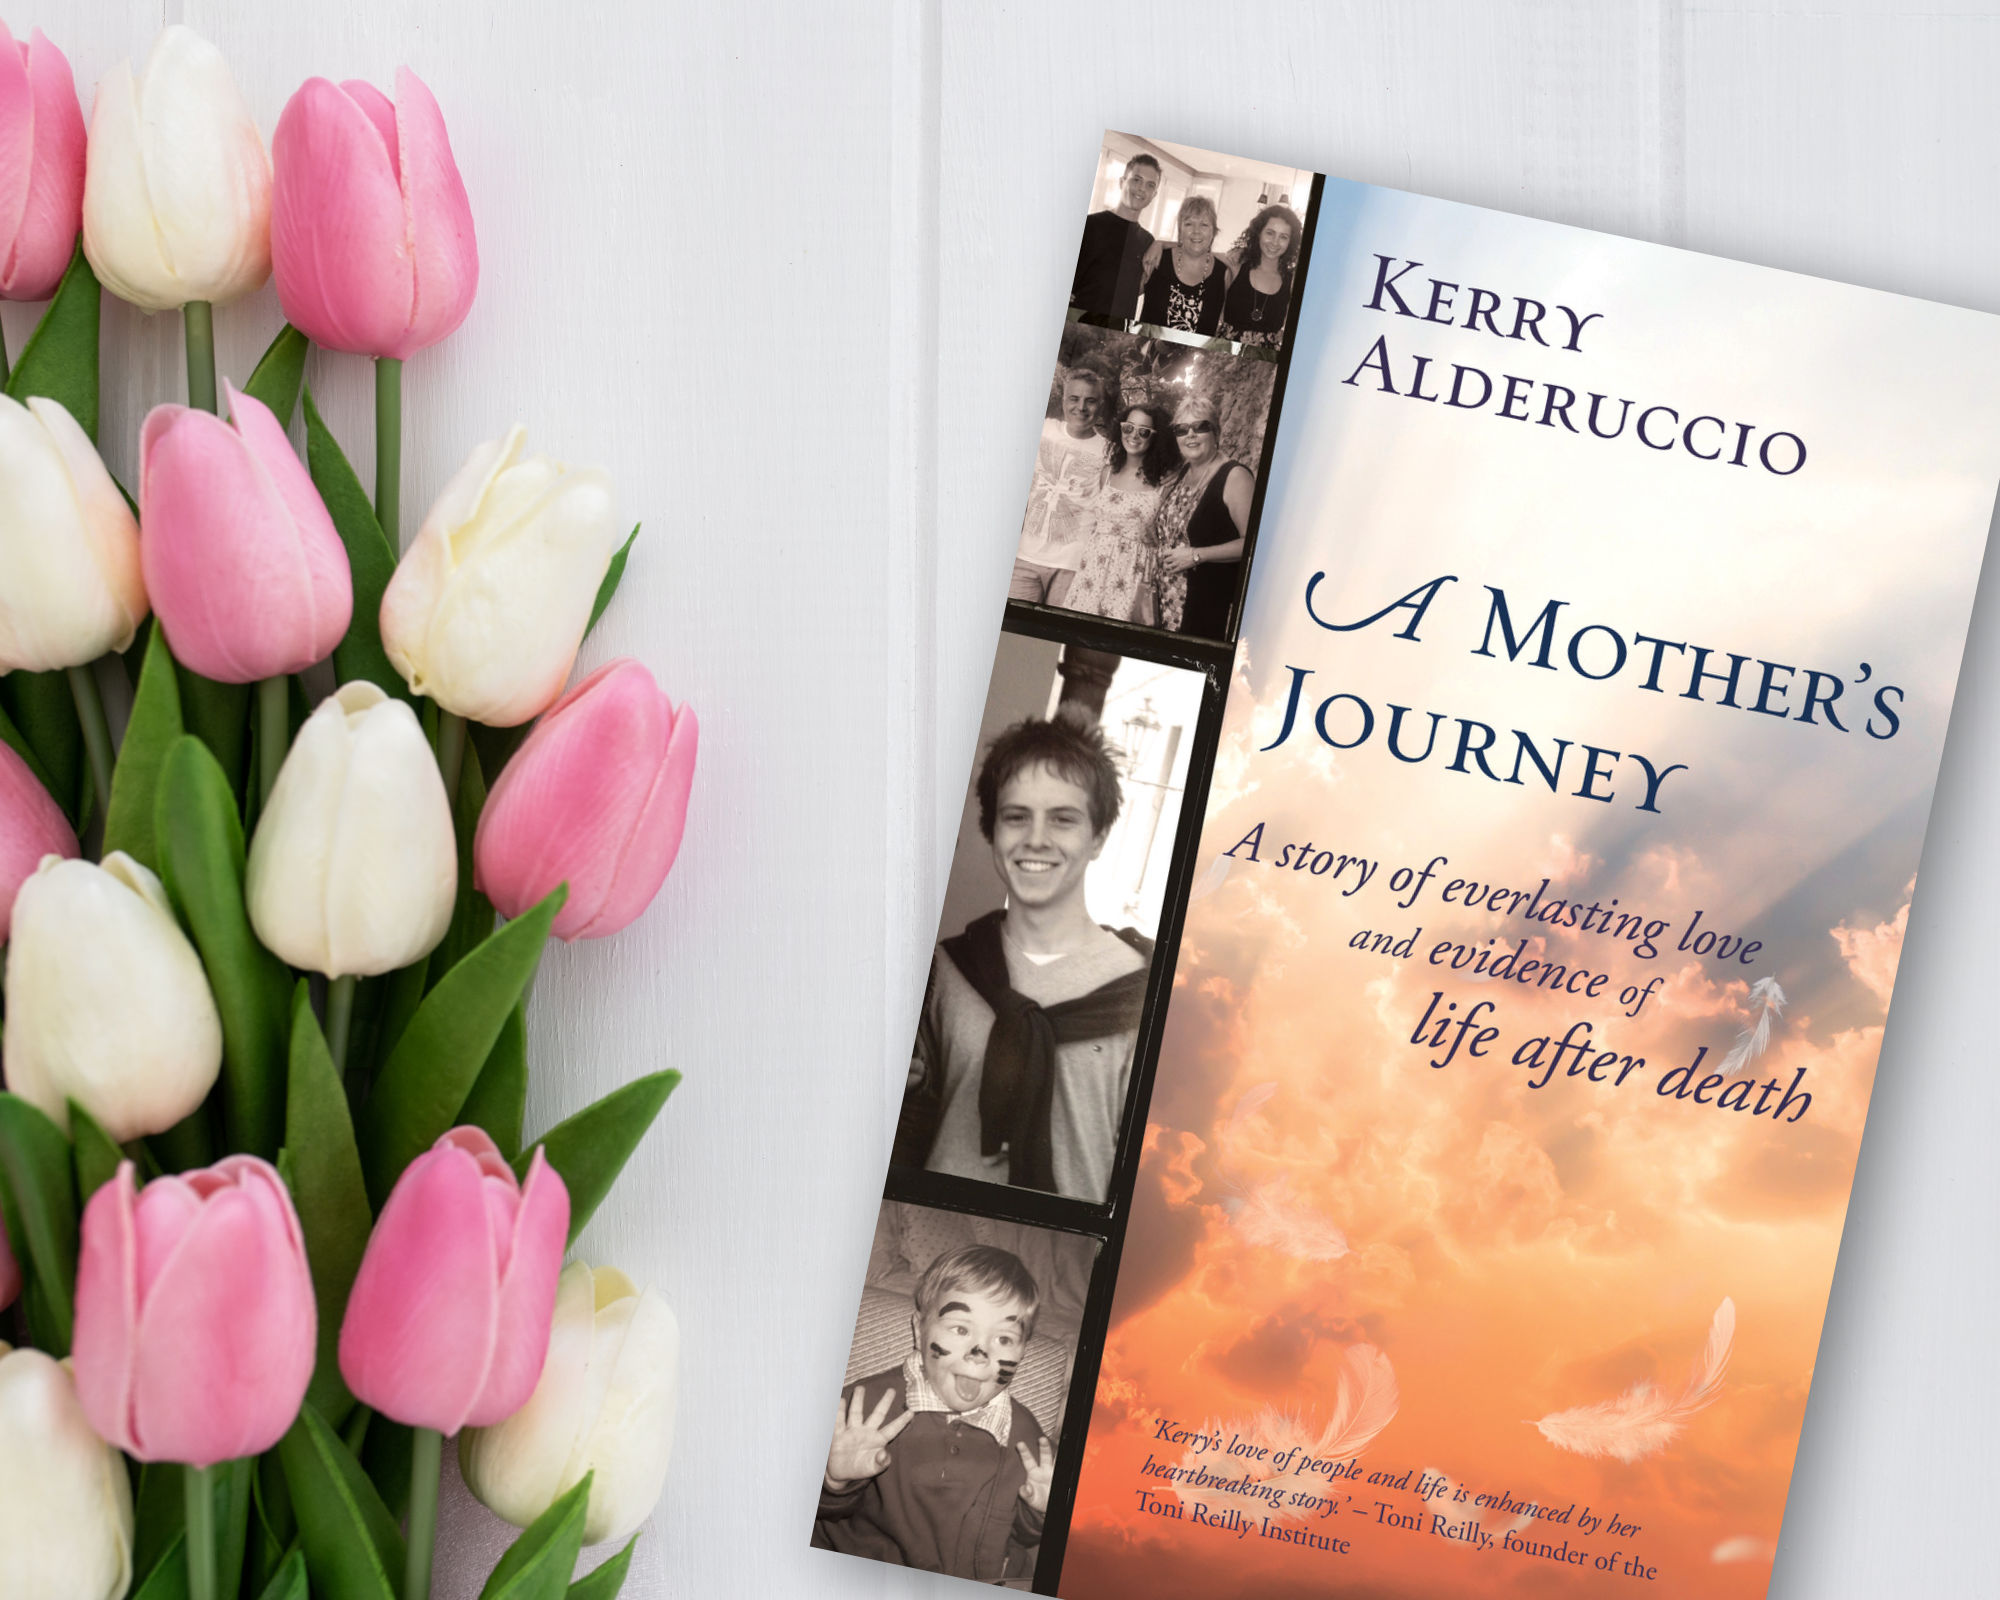 Kerry Alderuccio's book - A Mother's Journey photographed next to some beautiful flowers